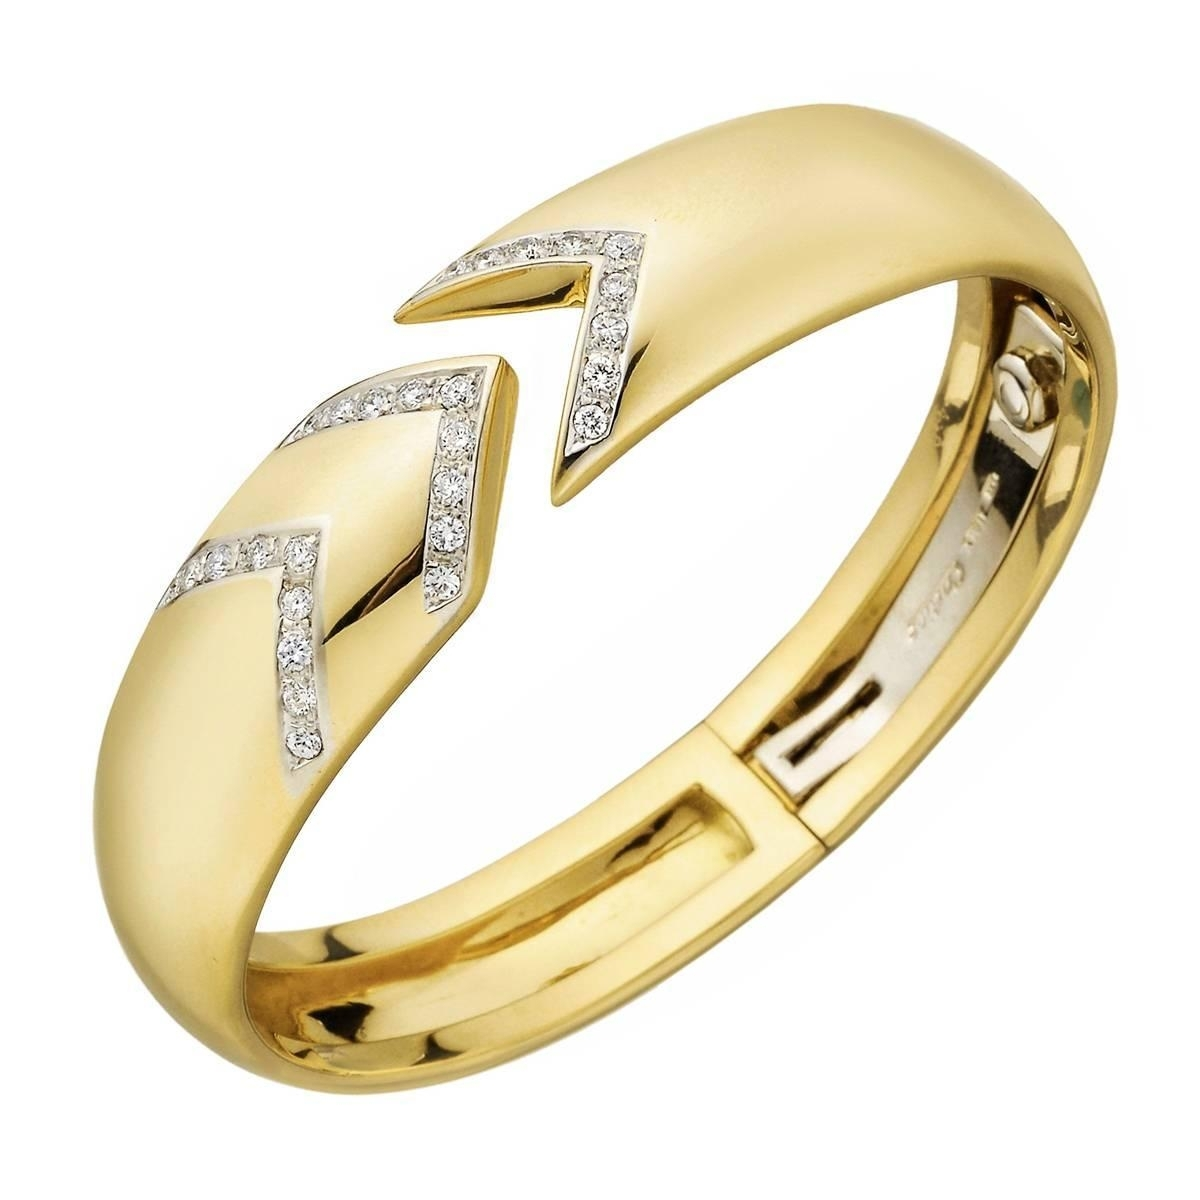 Cartier Diamond Yellow Gold Chevron Cuff Bracelet At 1stdibs Regarding Most Recent Chevron Engagement Rings (View 12 of 15)